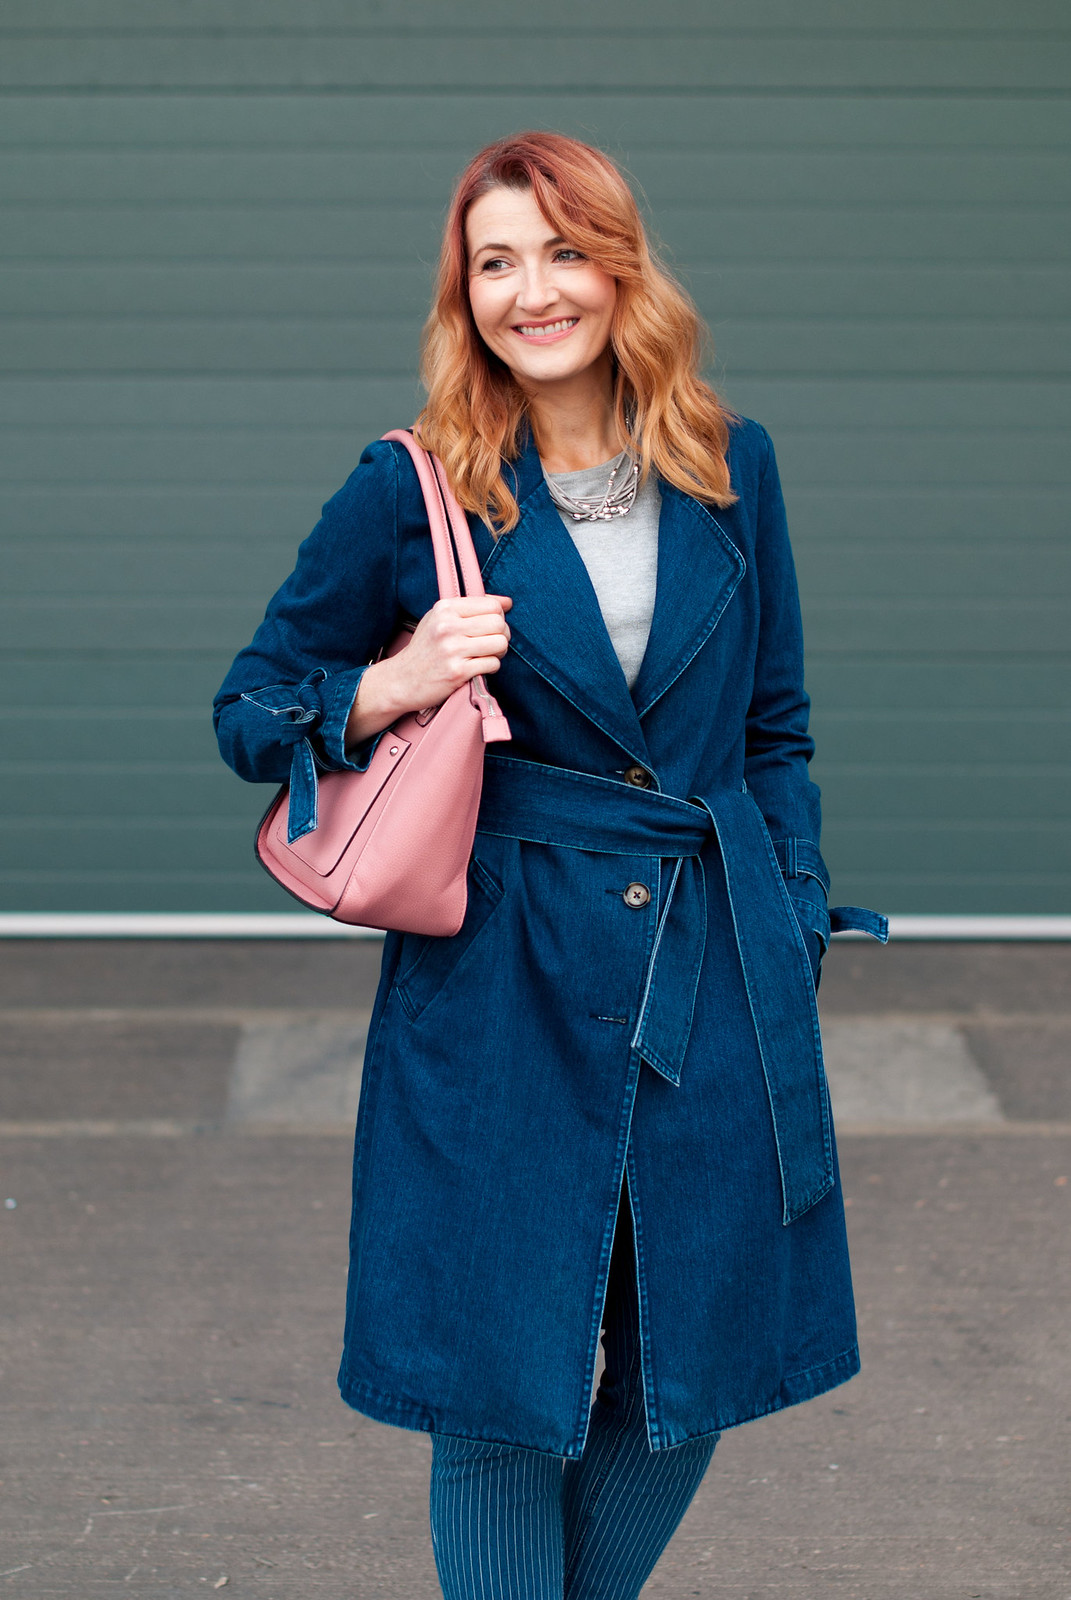 Winter to spring transitional outfit - Denim trench coat, pinstripe boyfriend jeans, white loafers, pink tote bag   Not Dressed As Lamb, over 40 style